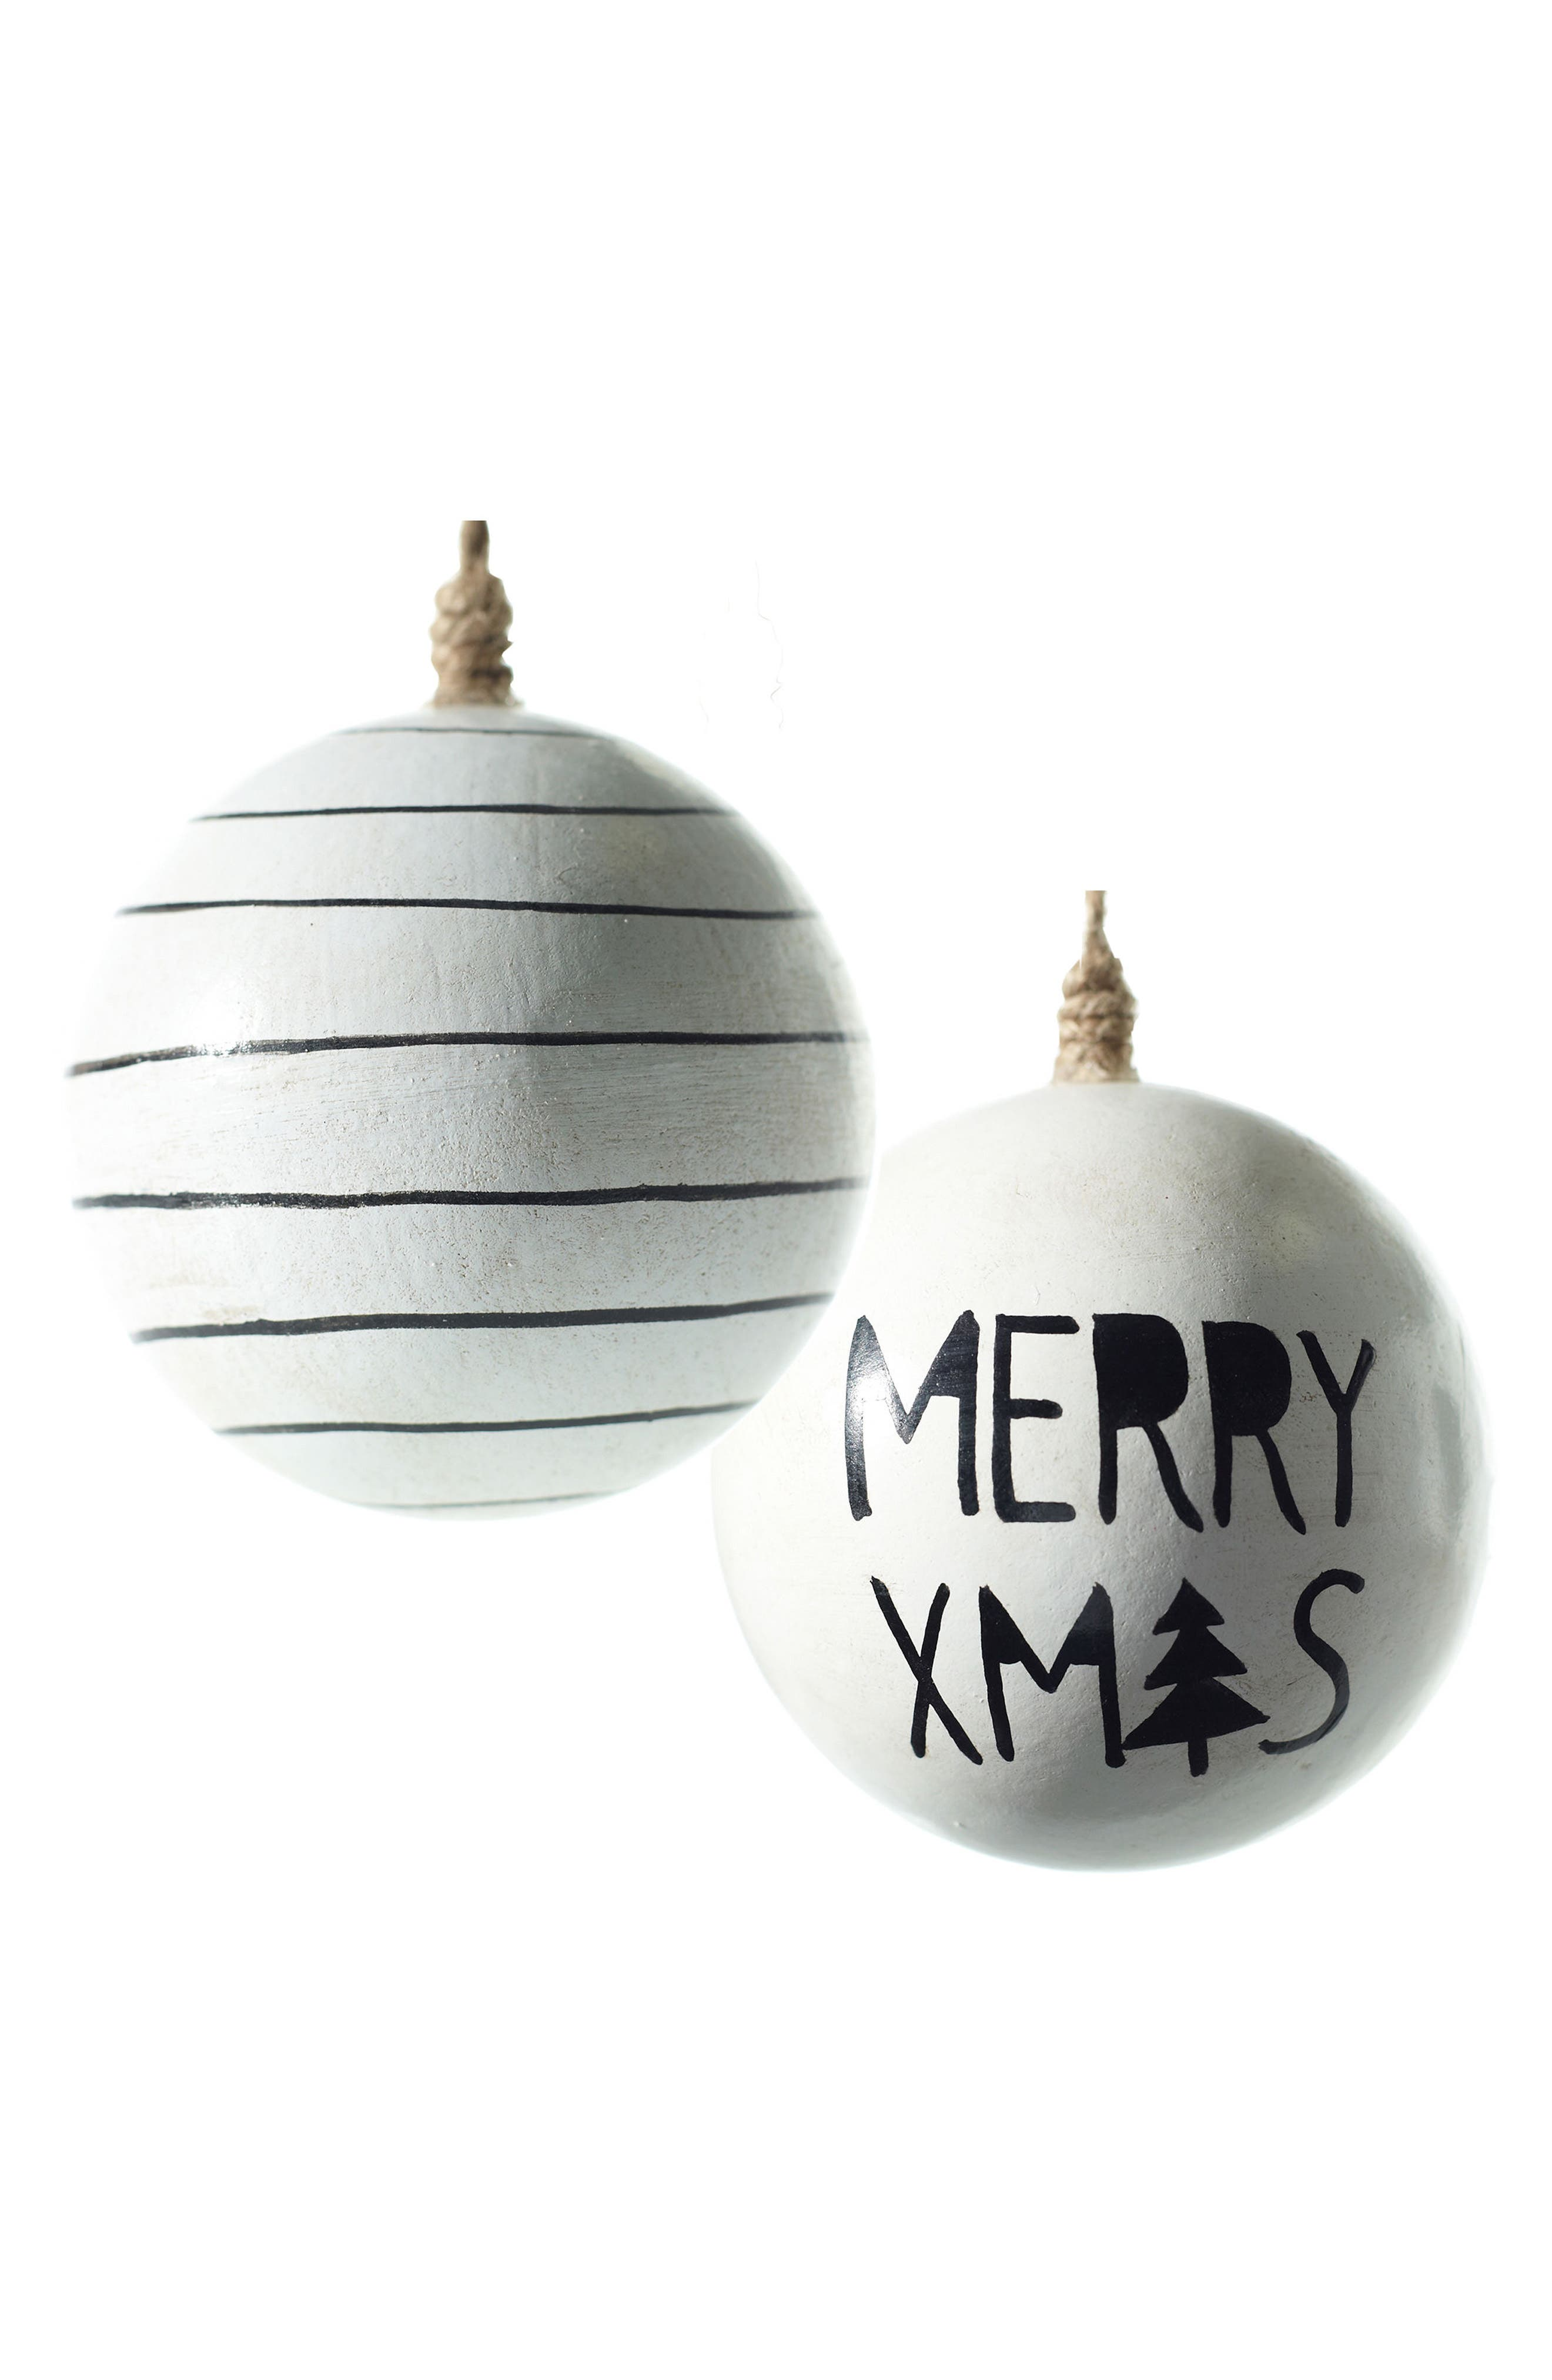 Alternate Image 1 Selected - Accent Decor Merry Xmas Set of 2 Wooden Ball Ornaments